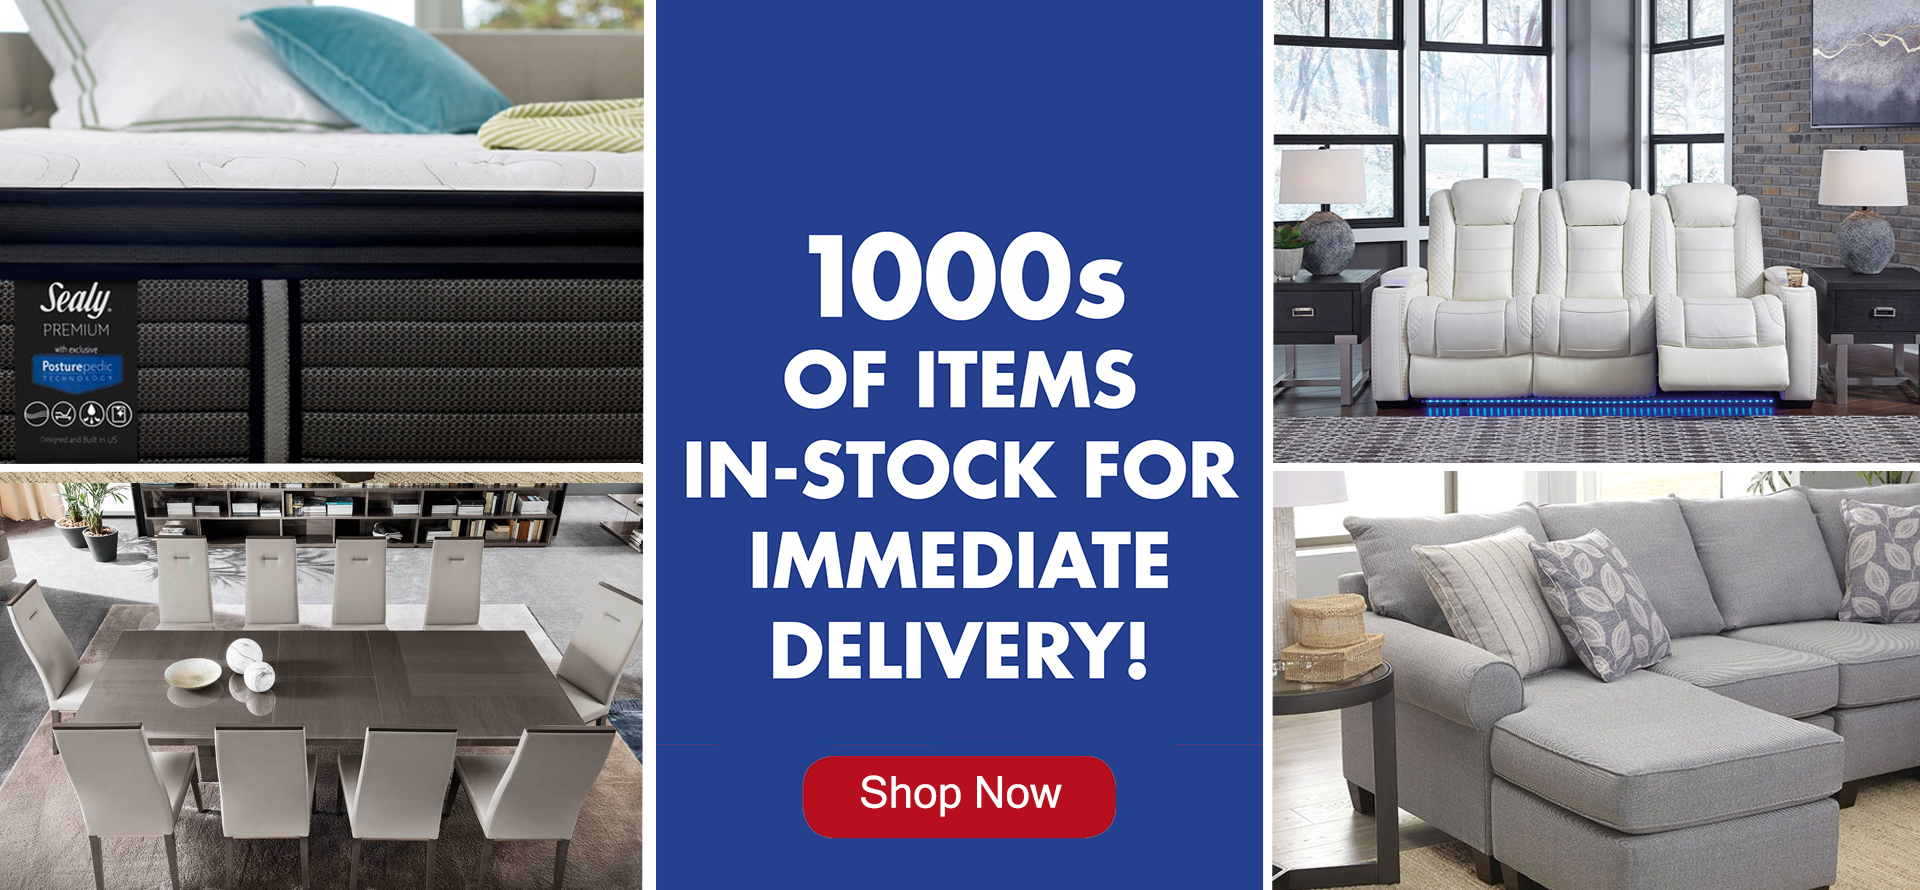 1000's of items in-stock